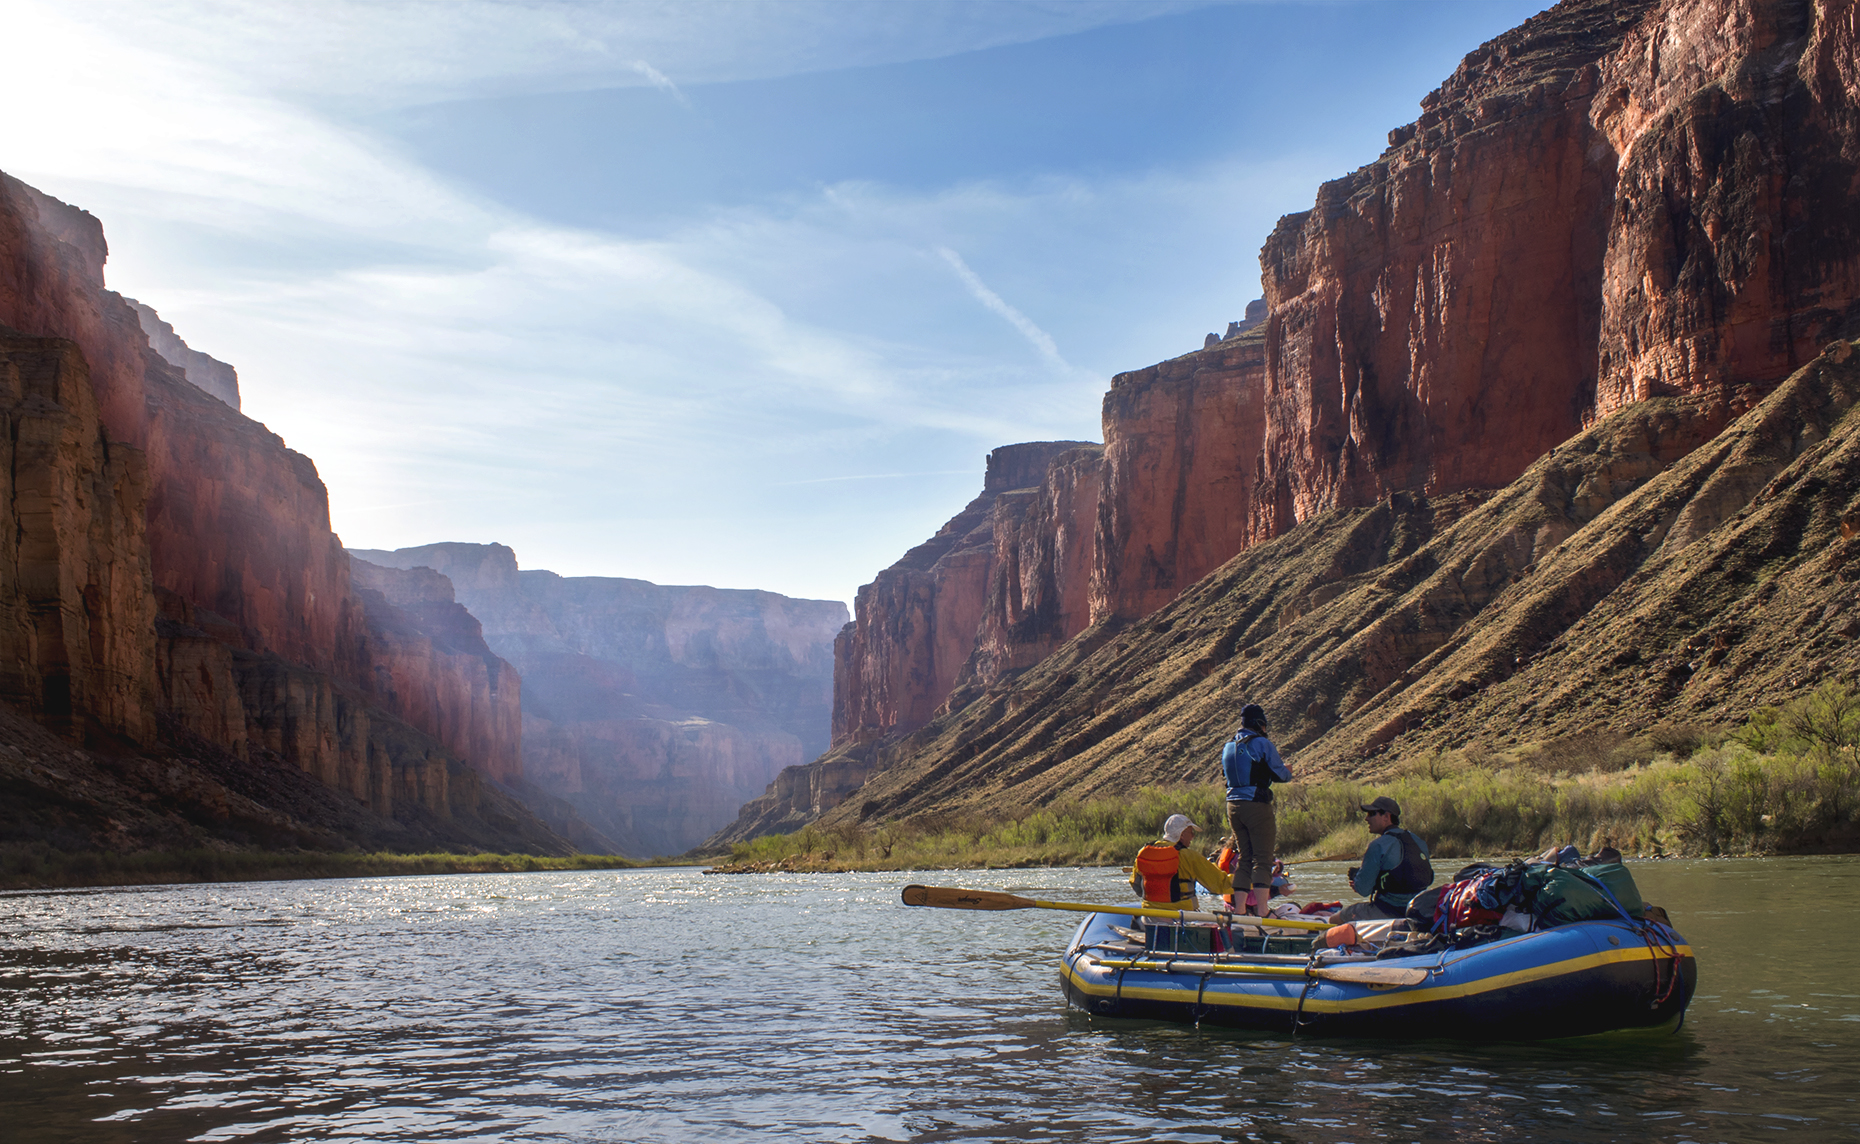 Two men and woman in raft in Grand Canyon